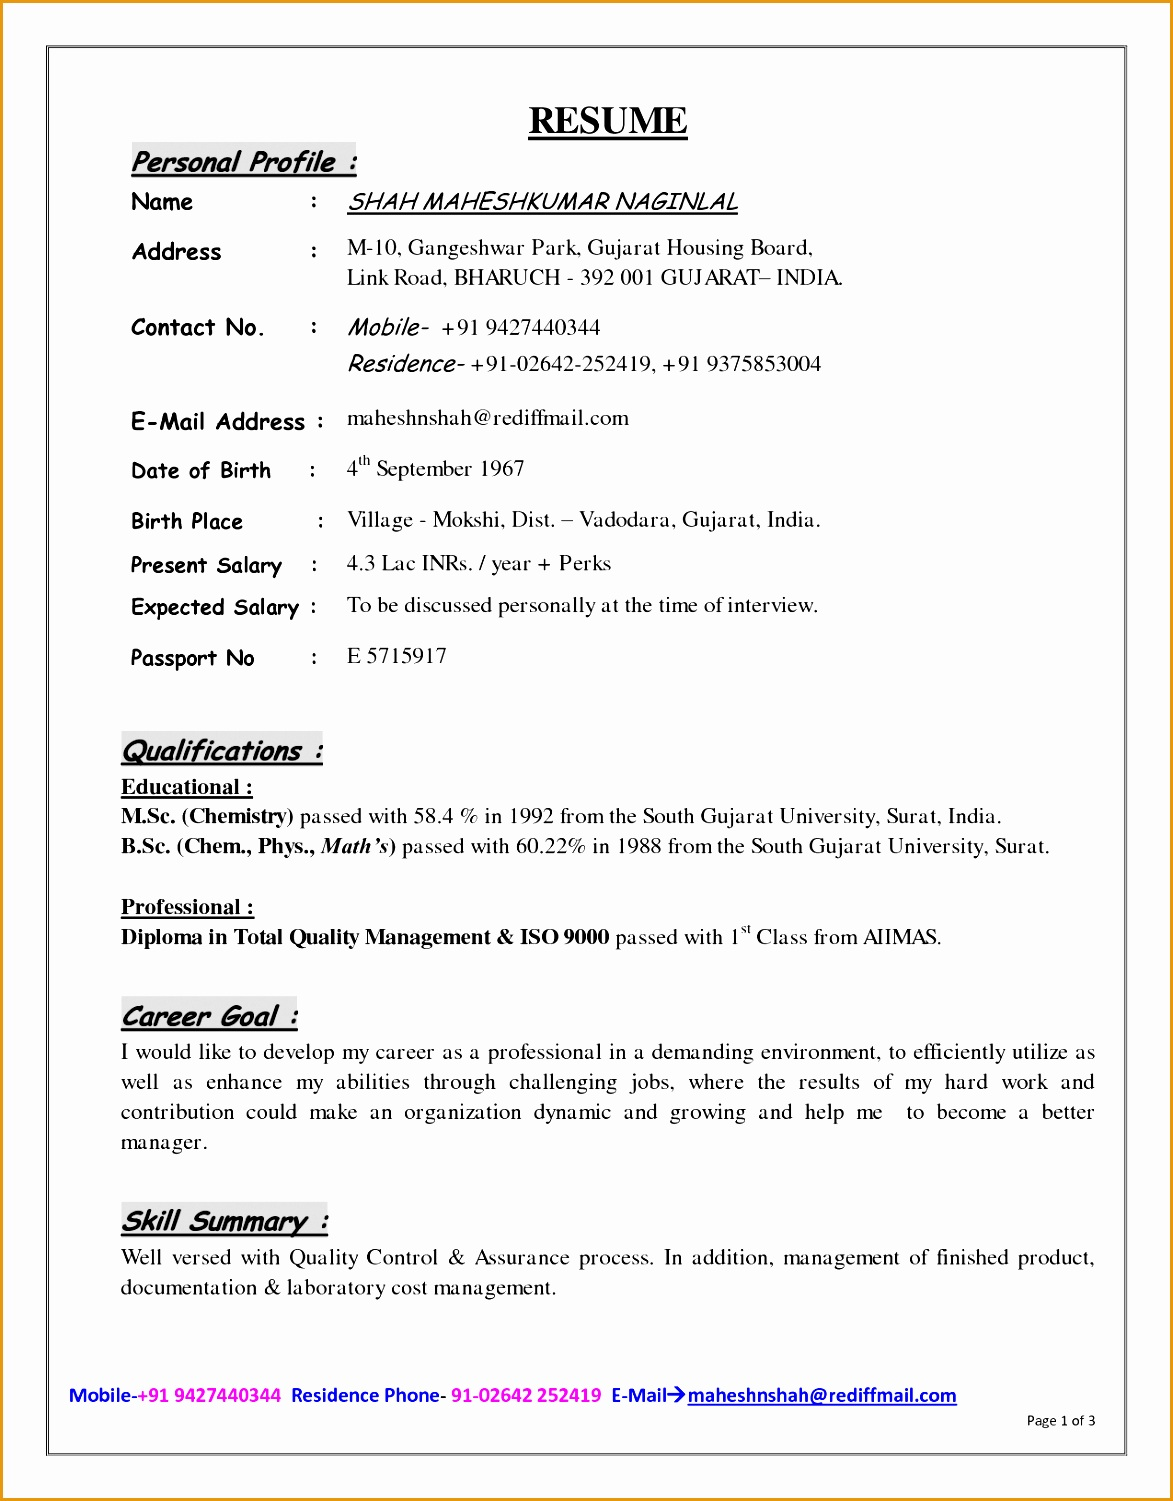 How To Write A Detailed Resume 6 Resume For High School Student With No Work Experience